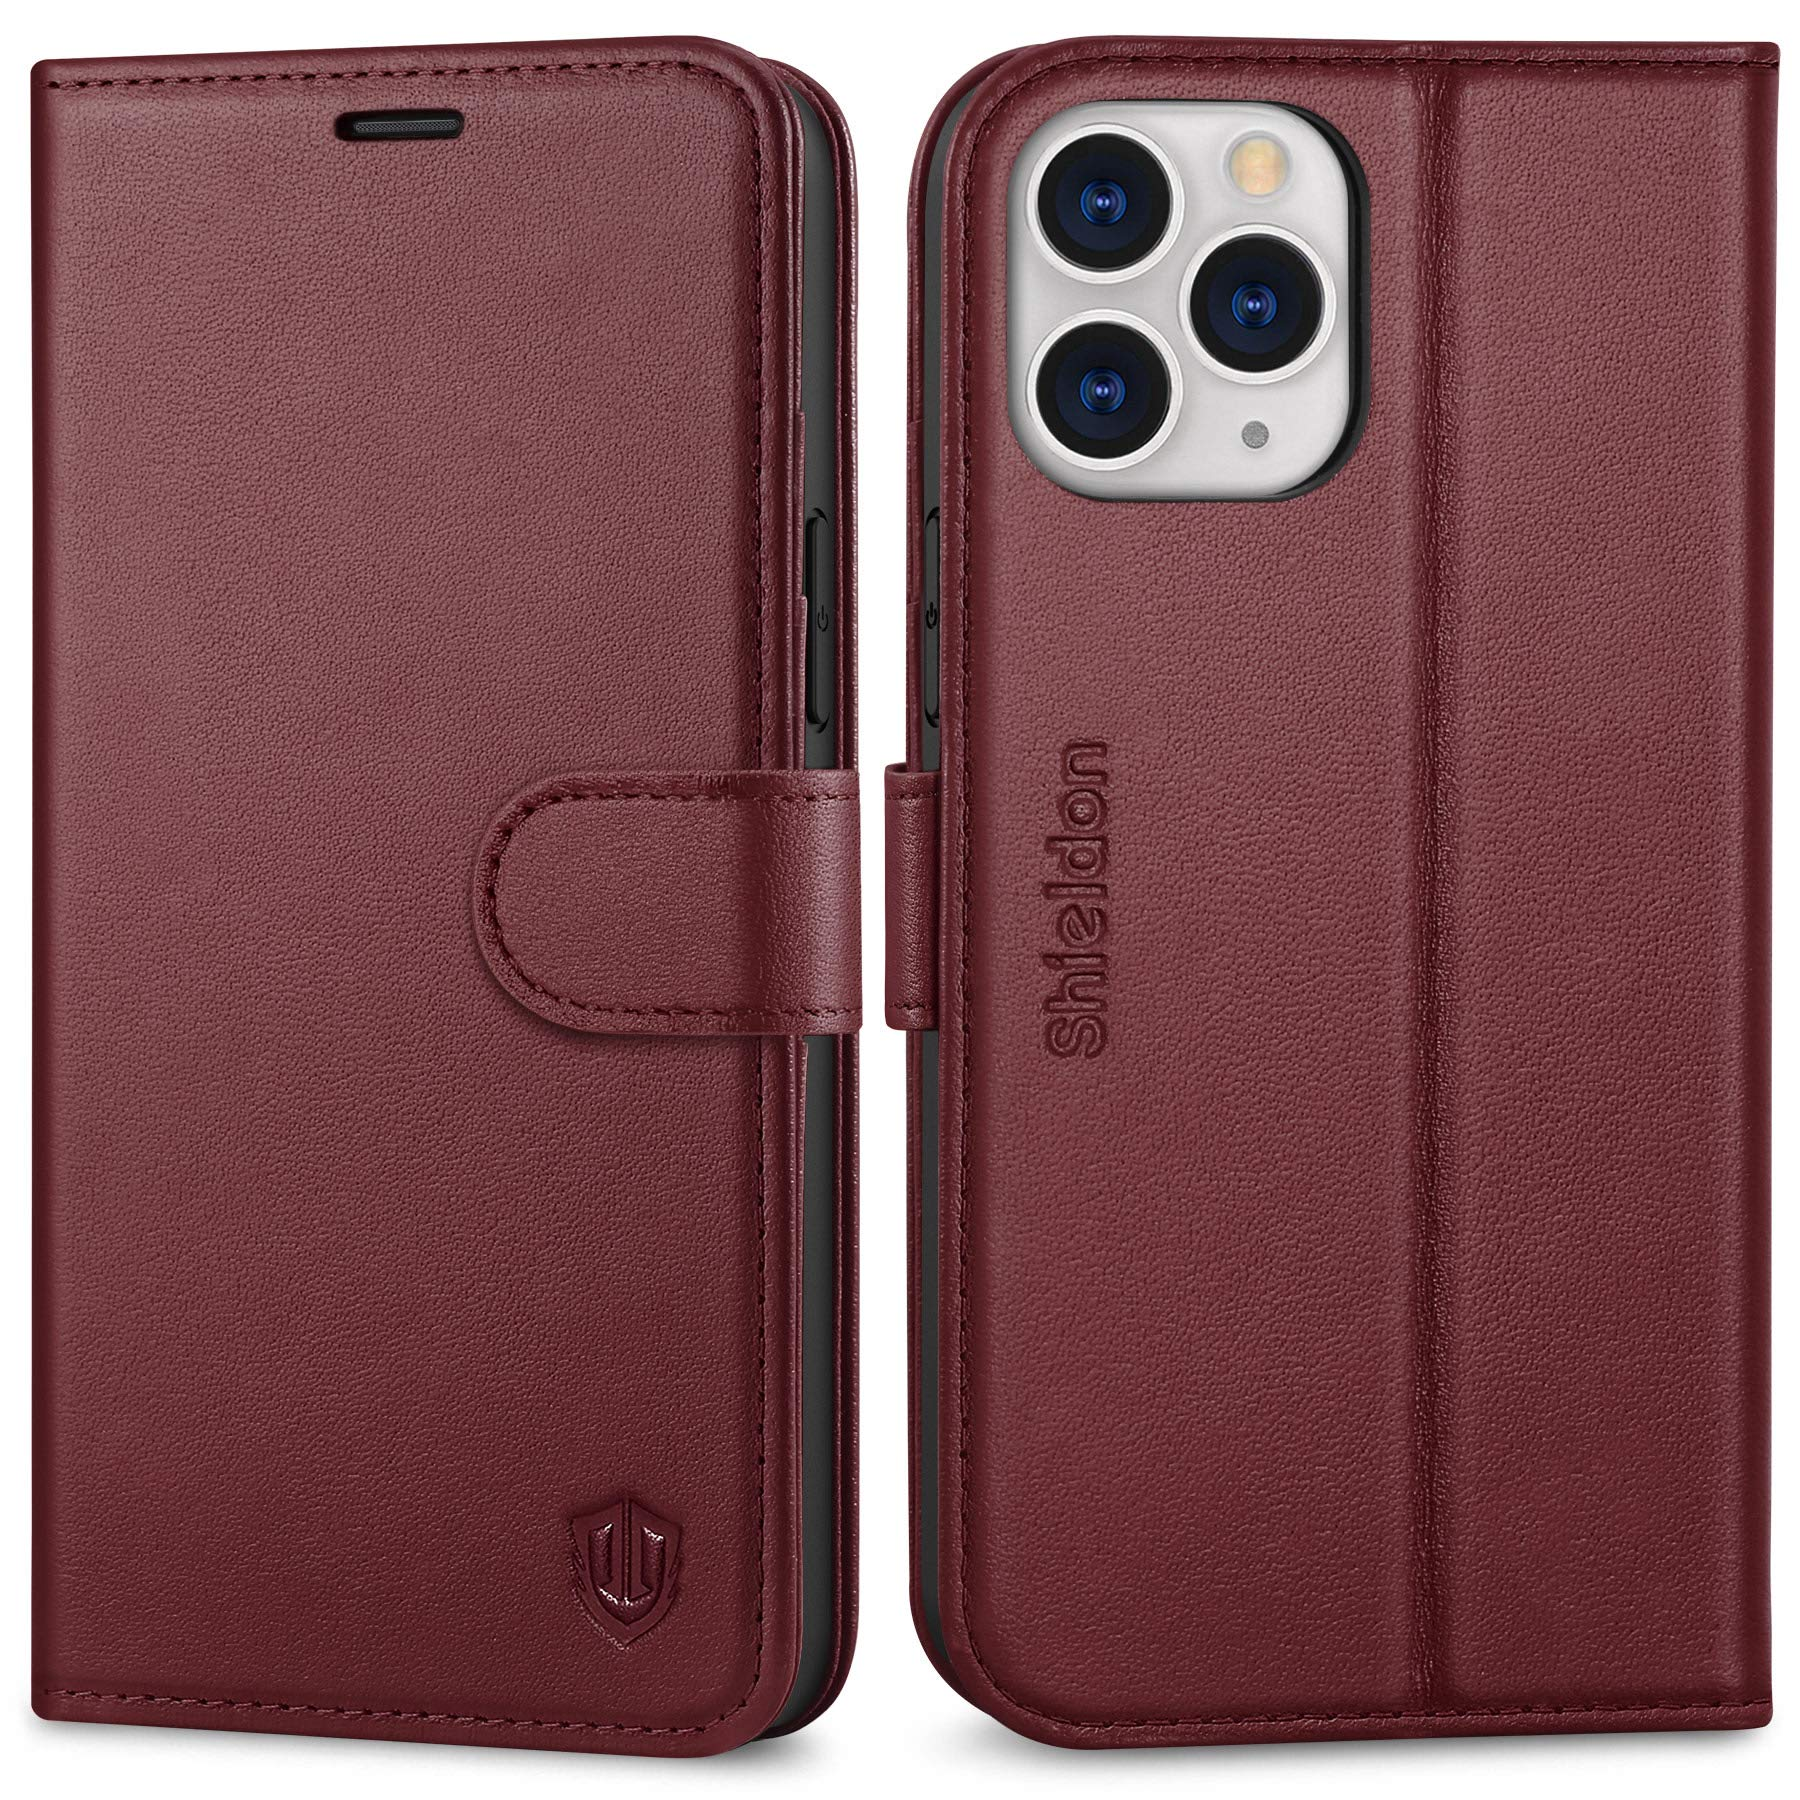 """SHIELDON Case for iPhone 12 Pro Max, Wallet Case for iPhone 12 Pro Max Genuine Leather Magnetic Folio Shockproof Cover Kickstand RFID Card Slots Compatible with iPhone 12 Pro Max (6.7"""") - Wine Red"""